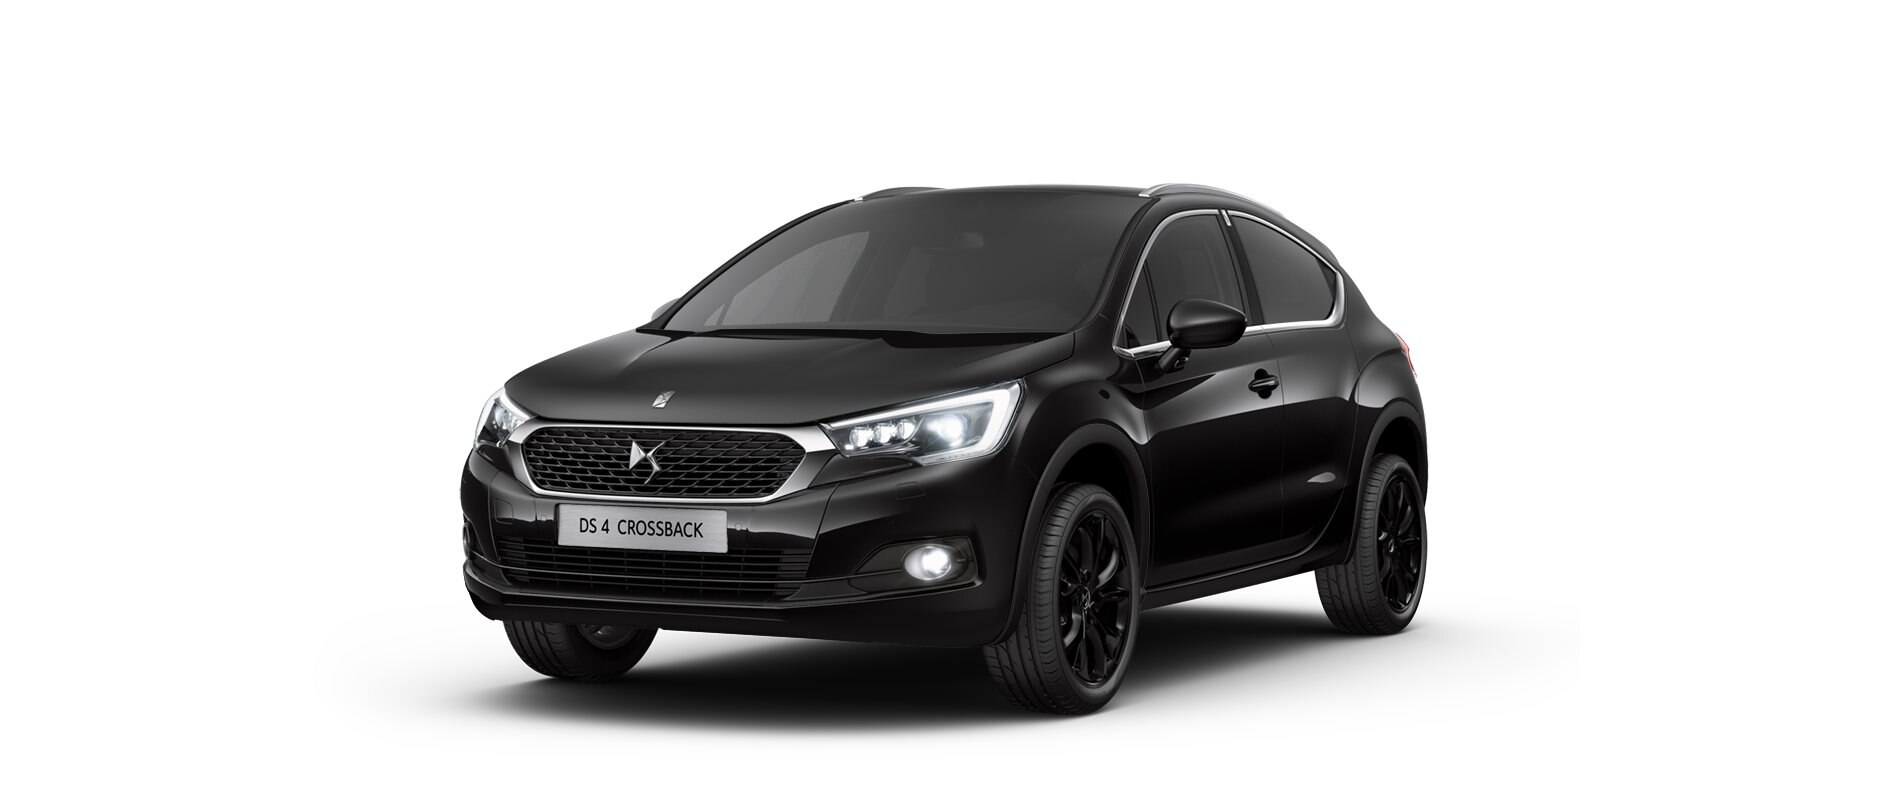 DS 4 Crossback - Perla Nera Black